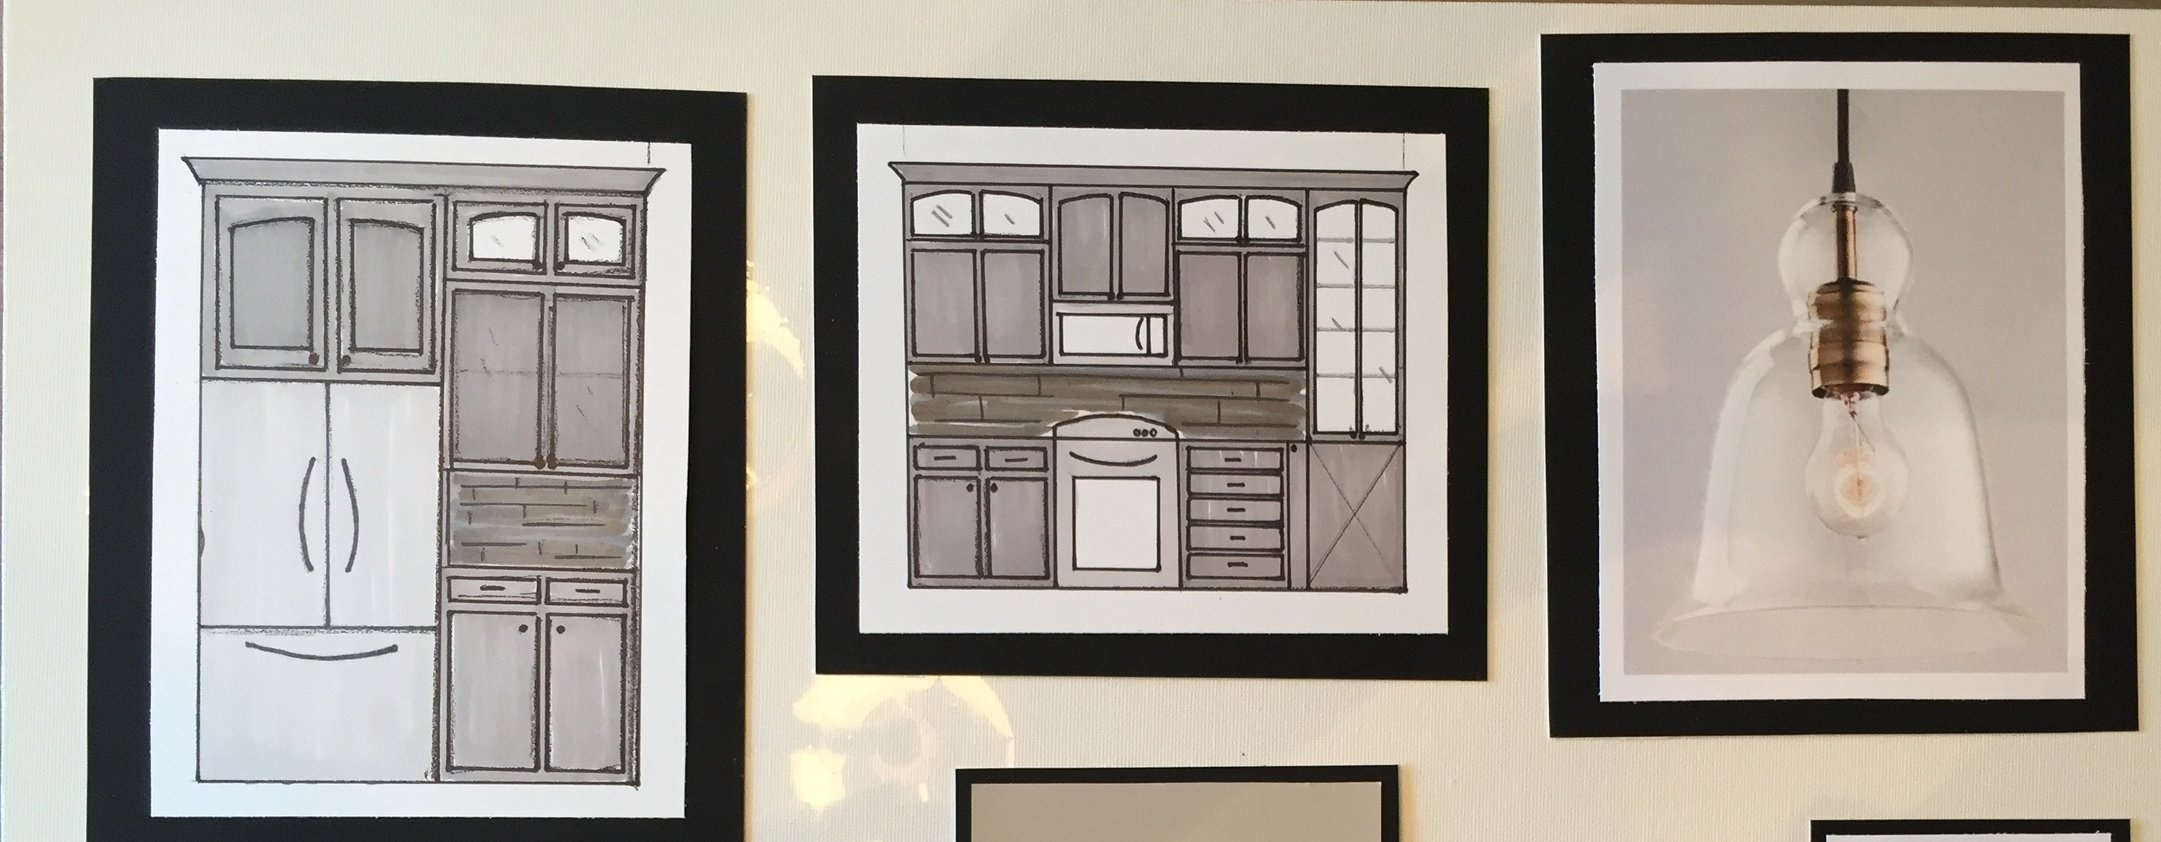 One of our presentation boards includes hand drawn and watercolored renderings of the kitchen.